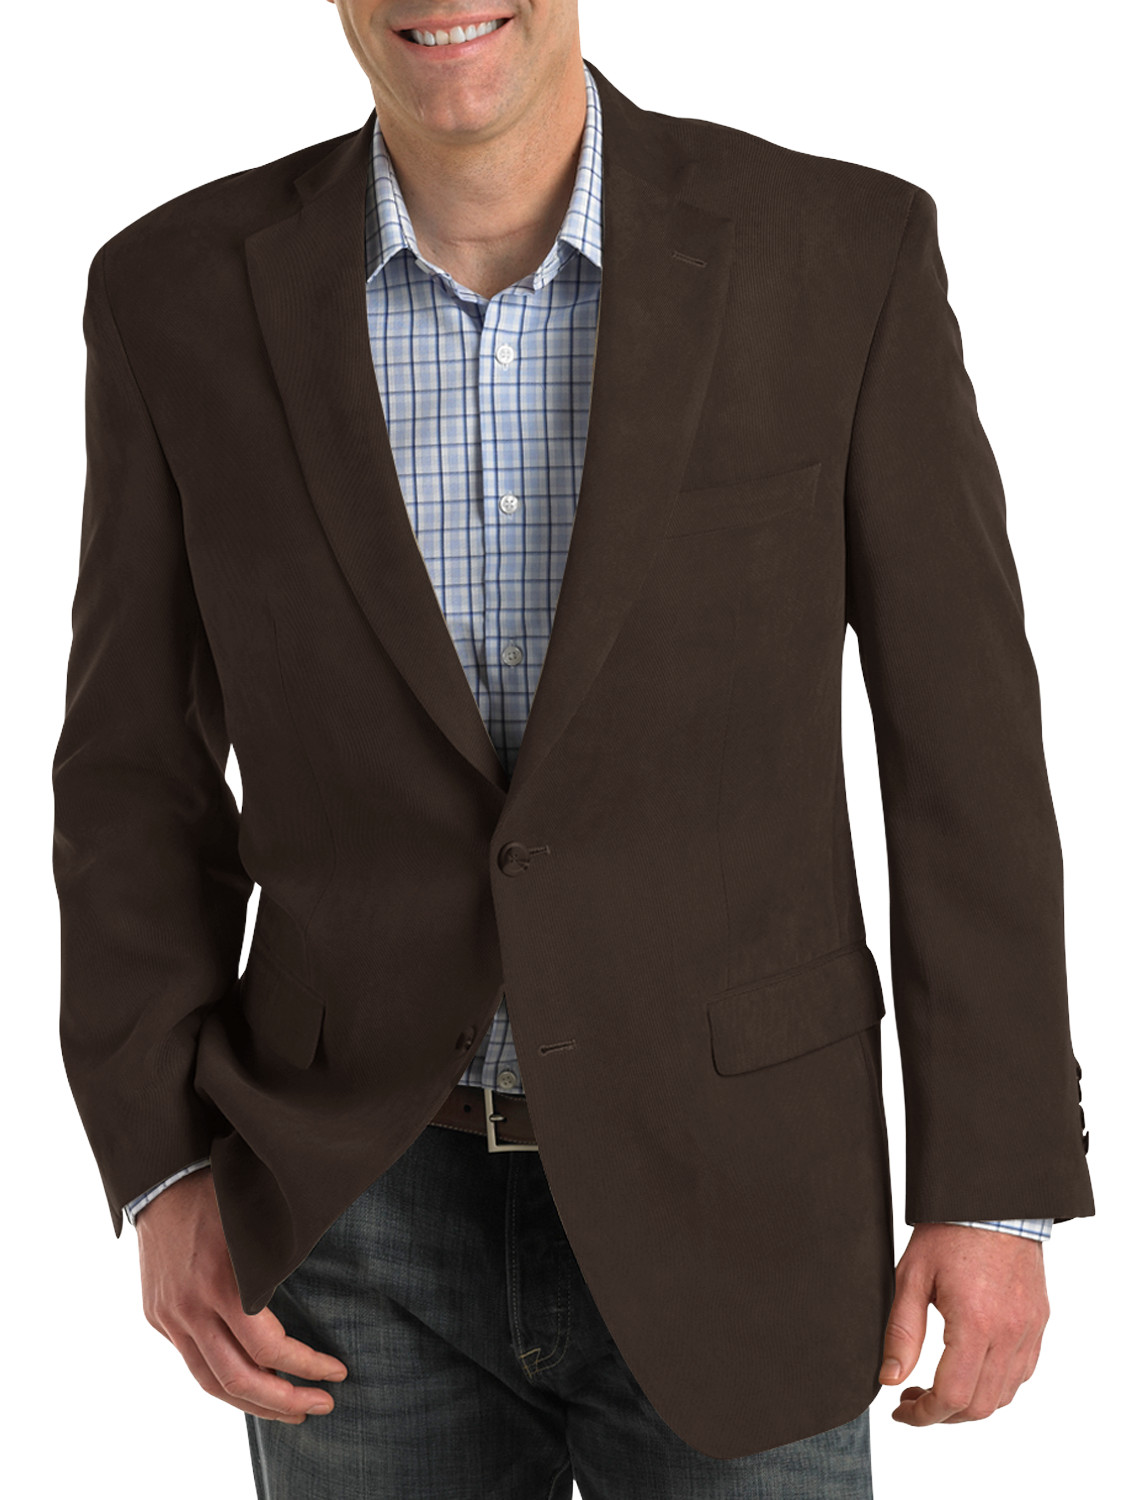 Men's Big & Tall Sportcoats & Blazers: Free Shipping on orders over $45 at hereffil53.cf - Your Online Big & Tall Store! Get 5% in rewards with Club O!